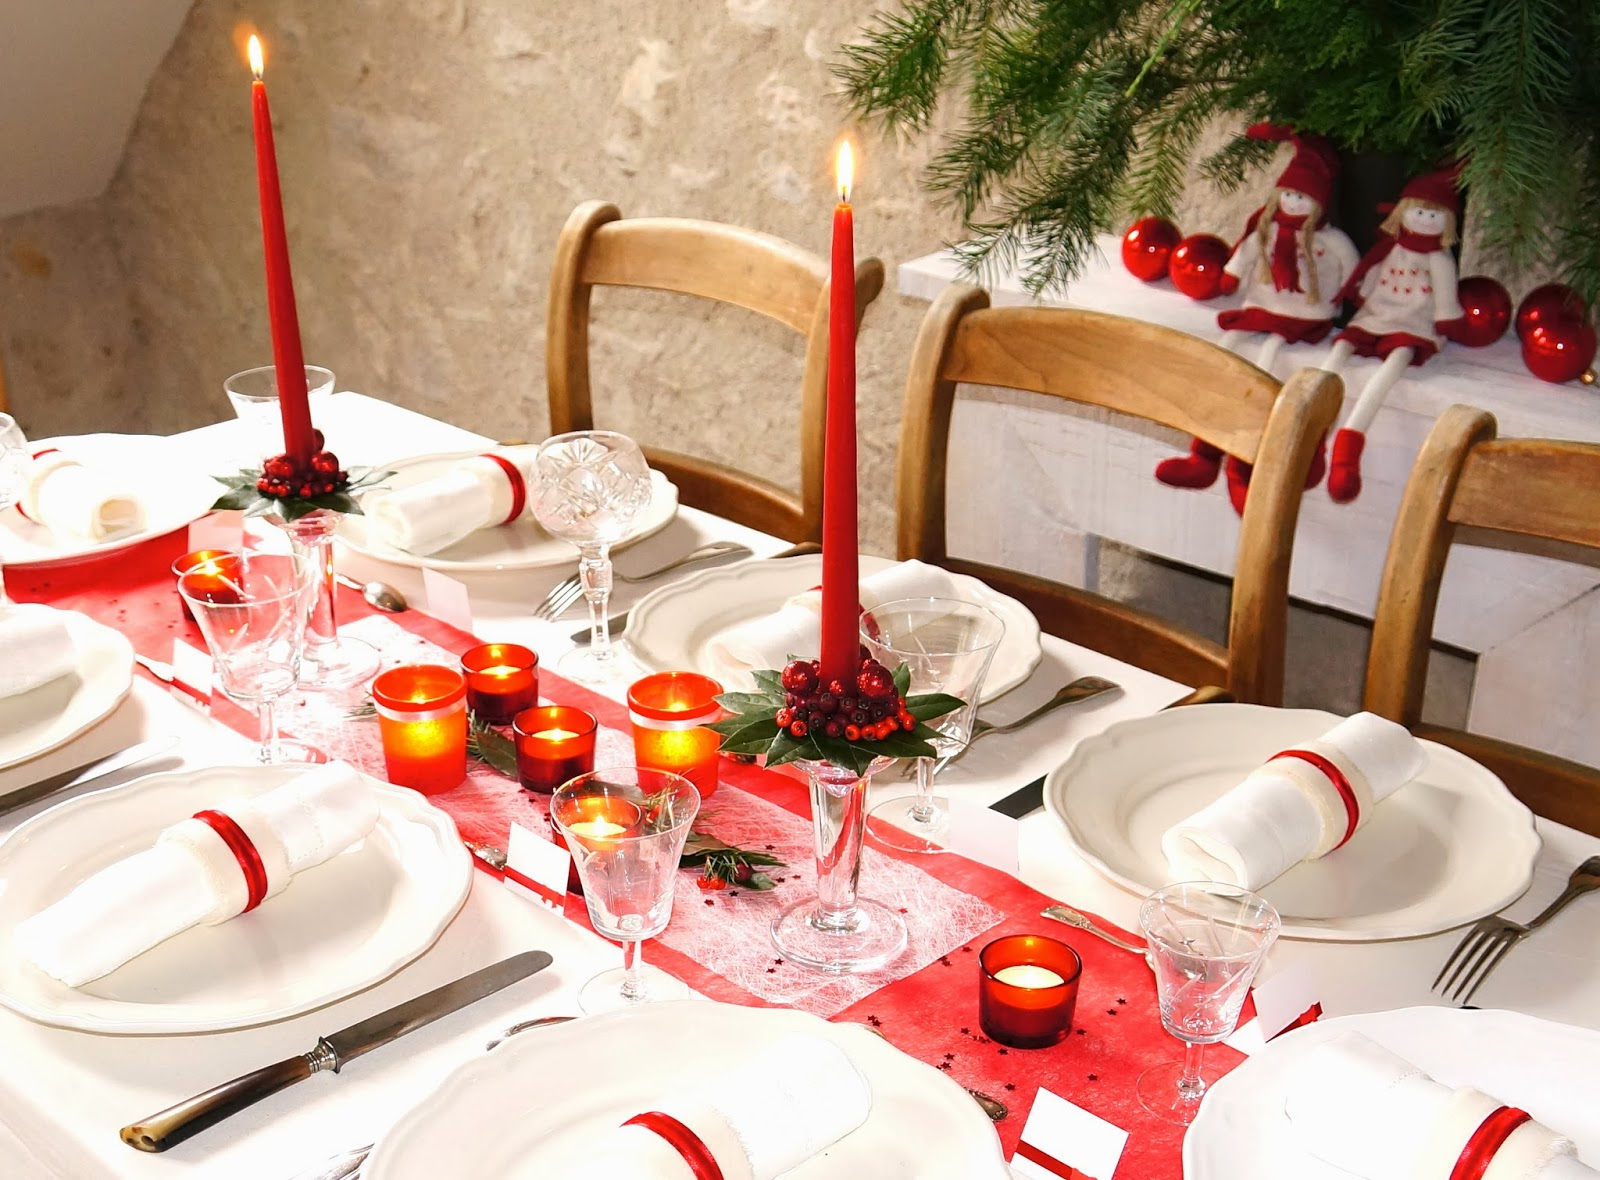 Ma boutique d co table d coration de table d coration de table de no l en rouge et blanc Une deco de table de noel